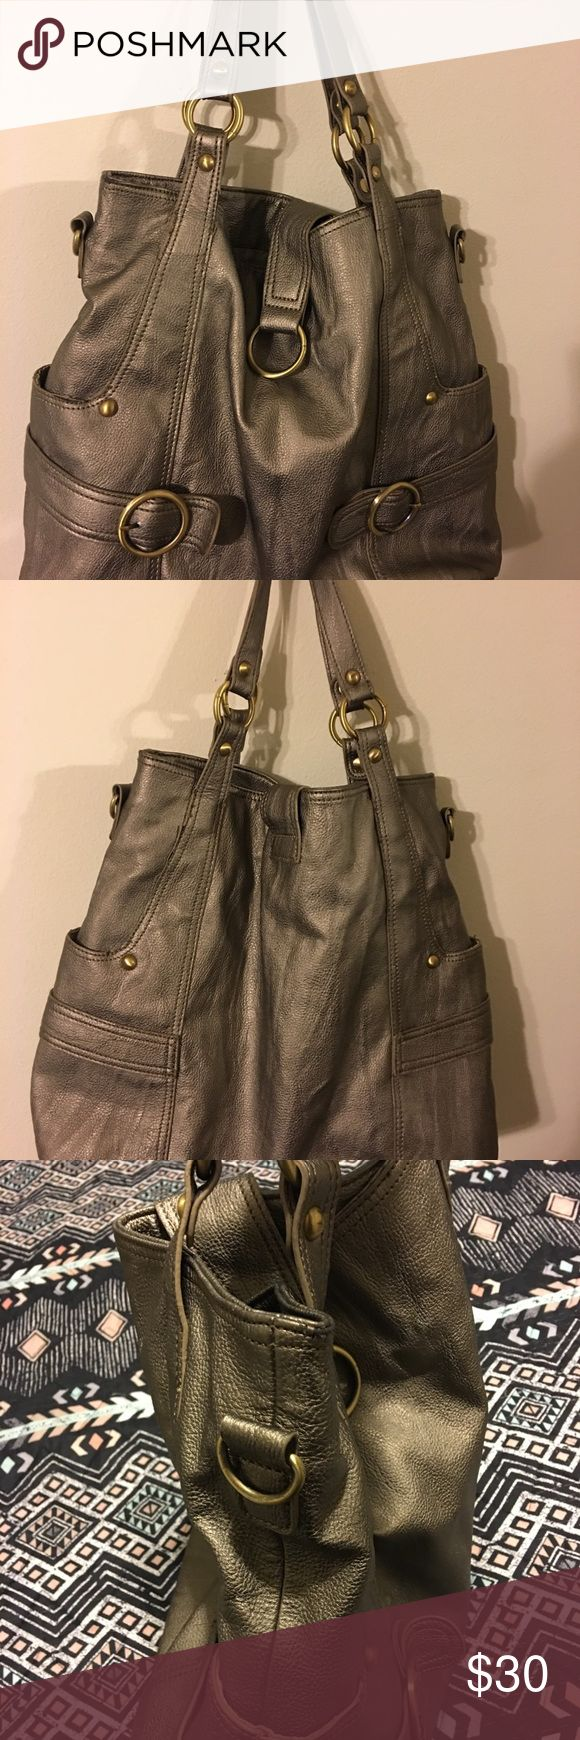 Timi & Leslie oversized bag Timi & Leslie oversized bag.  Comes with strap to make a crossbody Timi & Leslie Bags Totes